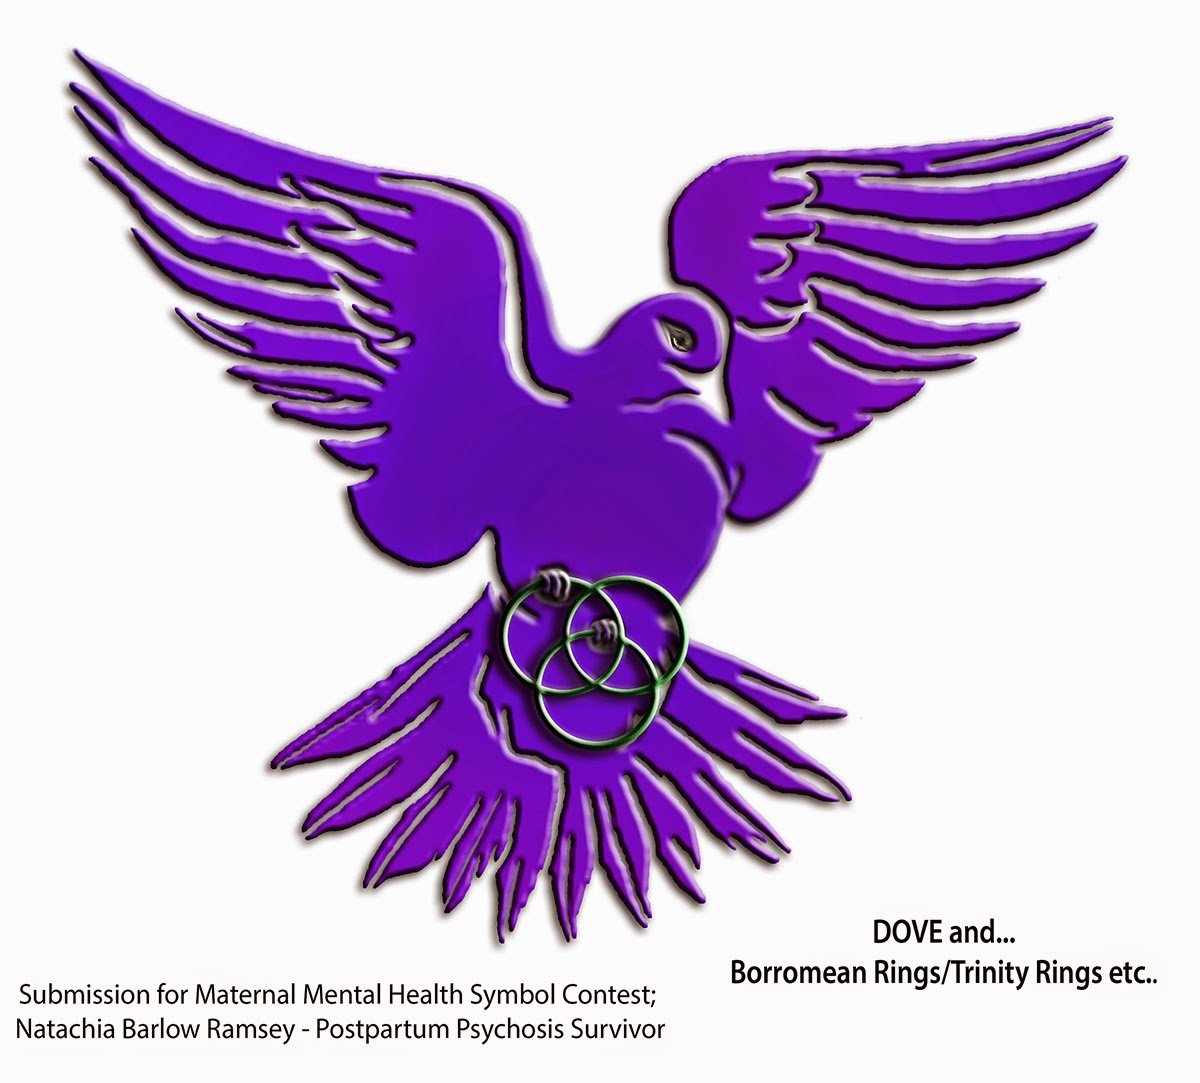 Maternal Mental Health Symbol, postpartum psychosis, maternal mental health, natachia barlow ramsey, postpartum depression, suicide